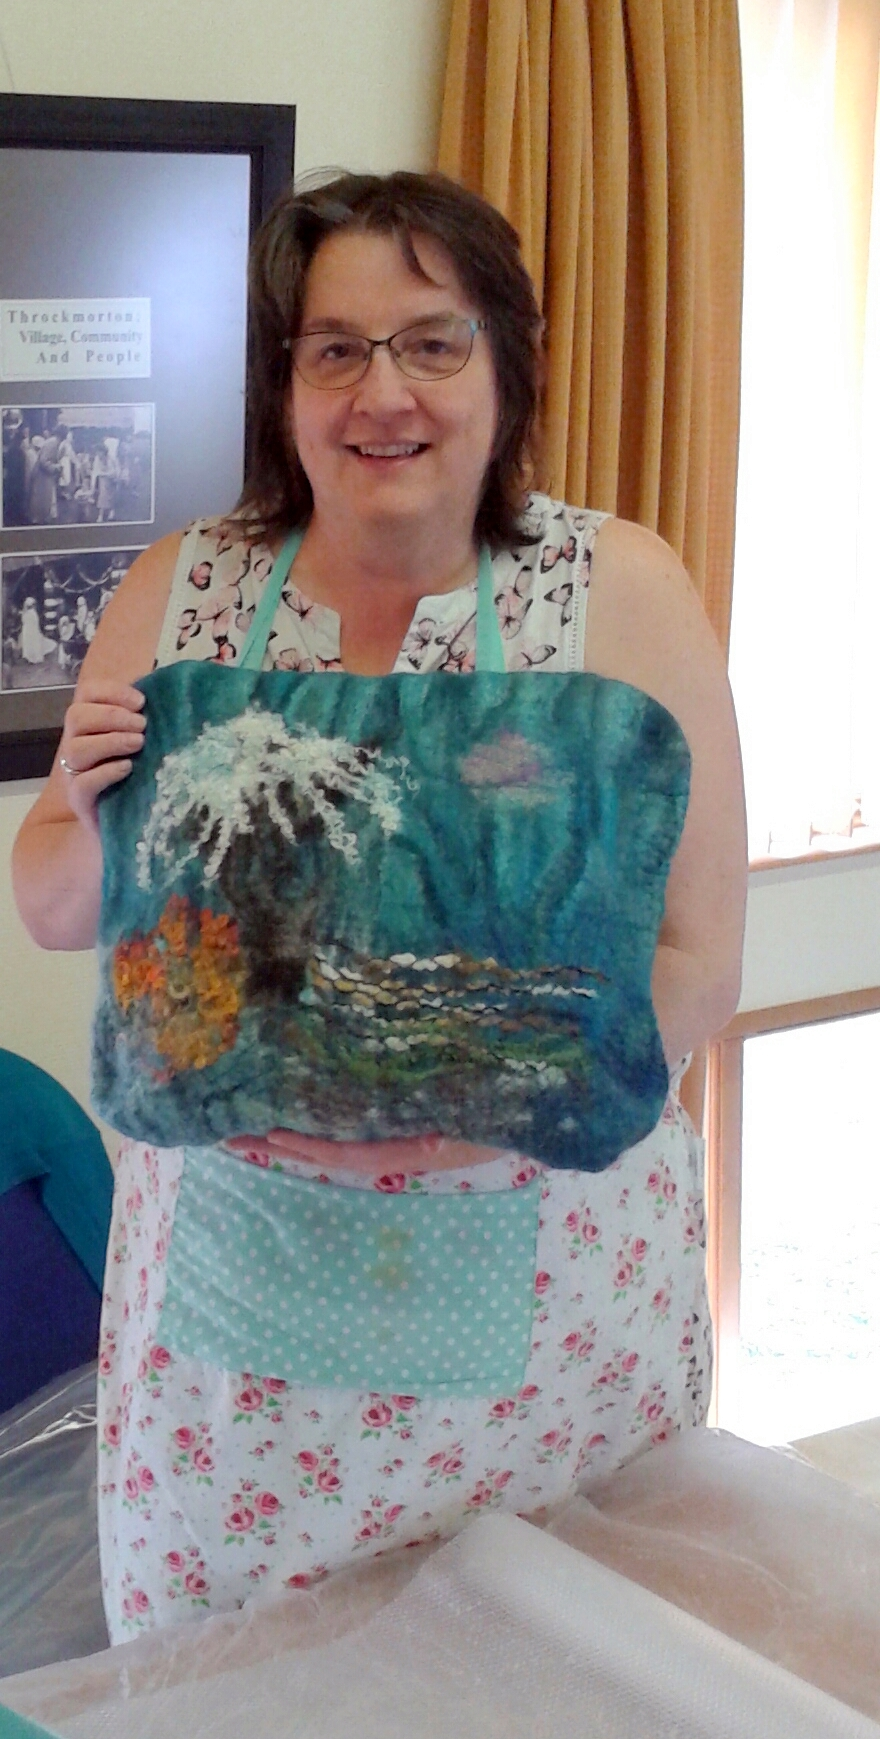 Sea life themed cushion cover made by Rose Rose at the Felted Cushion course with Textiles Artist Raya Brown in Worcestershire